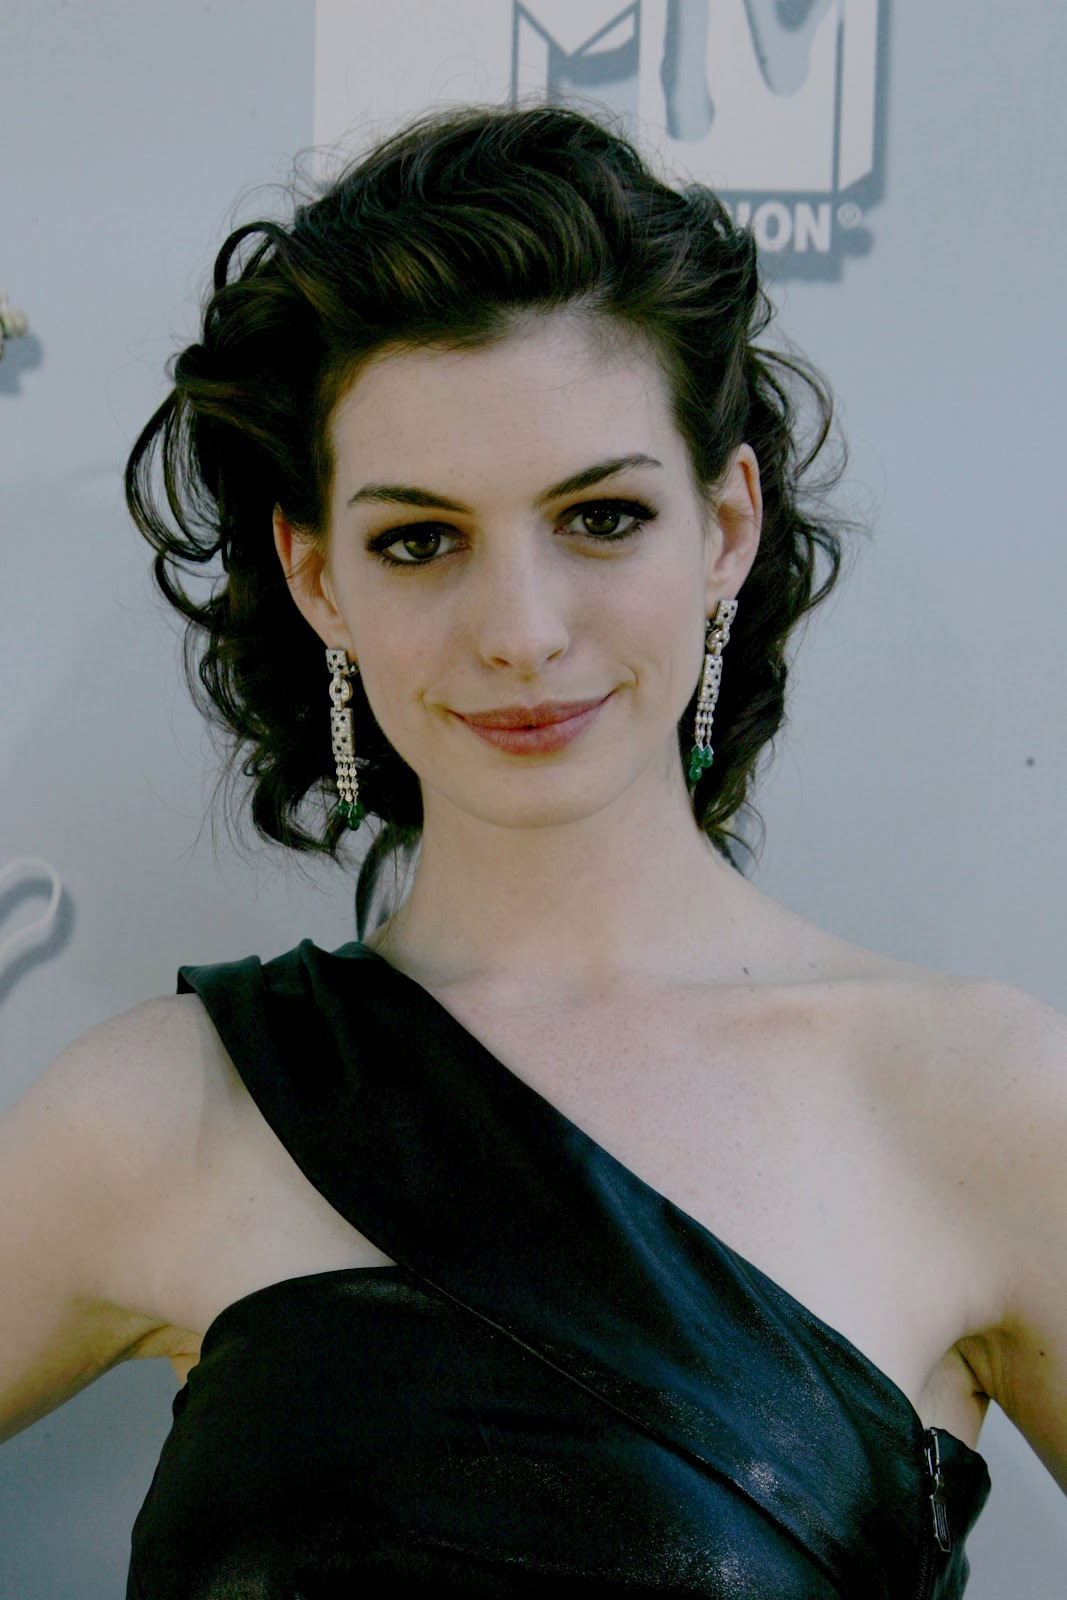 From the Archives: Anne Hathaway in Vogue - Vogue